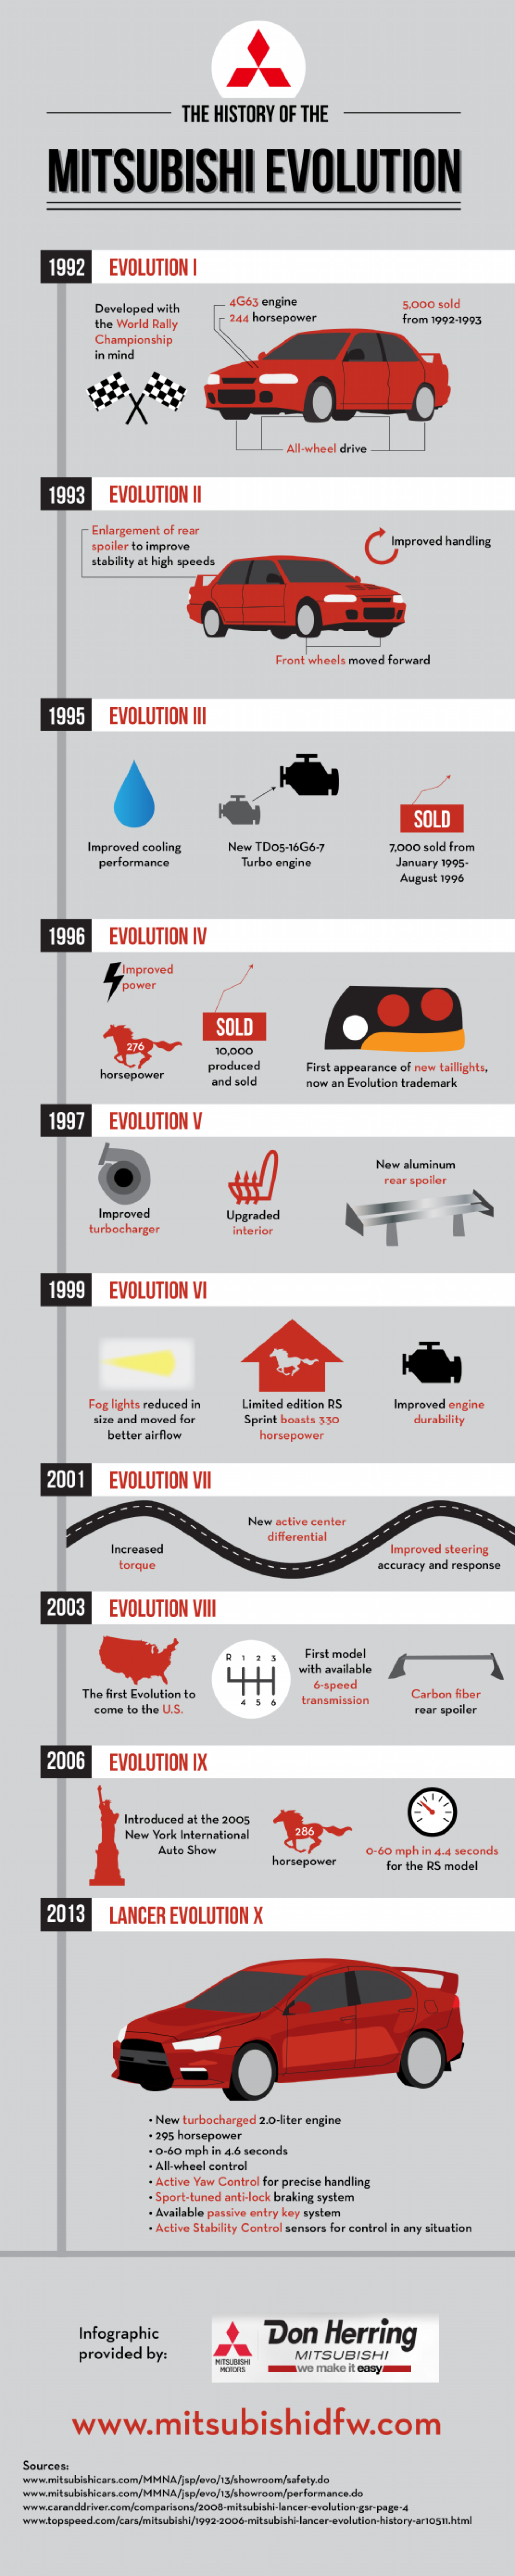 The History of the Mitsubishi Evolution Infographic